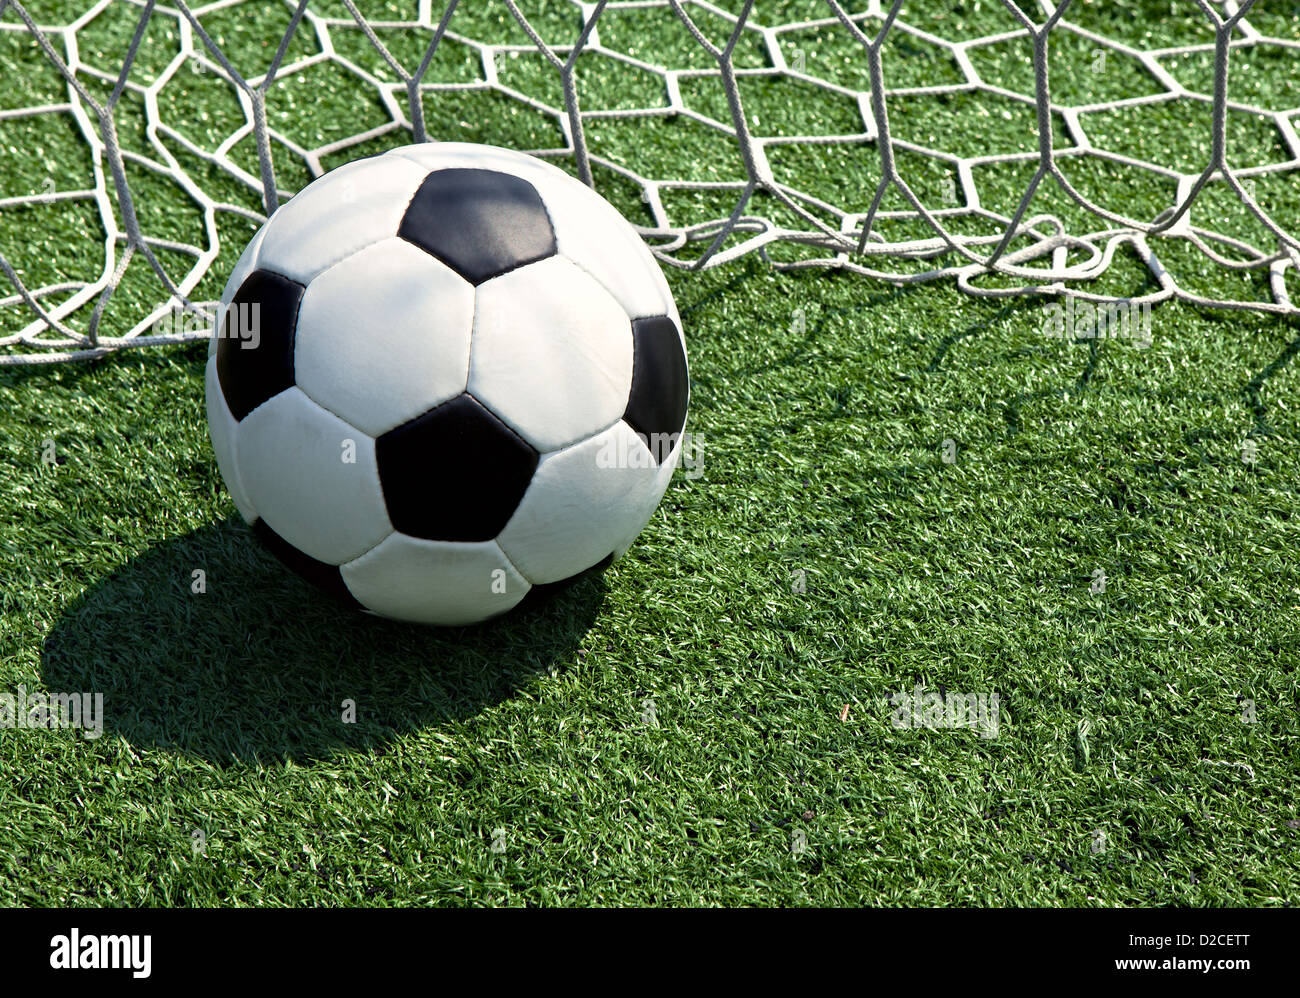 Soccer ball on the field in the grid - Stock Image